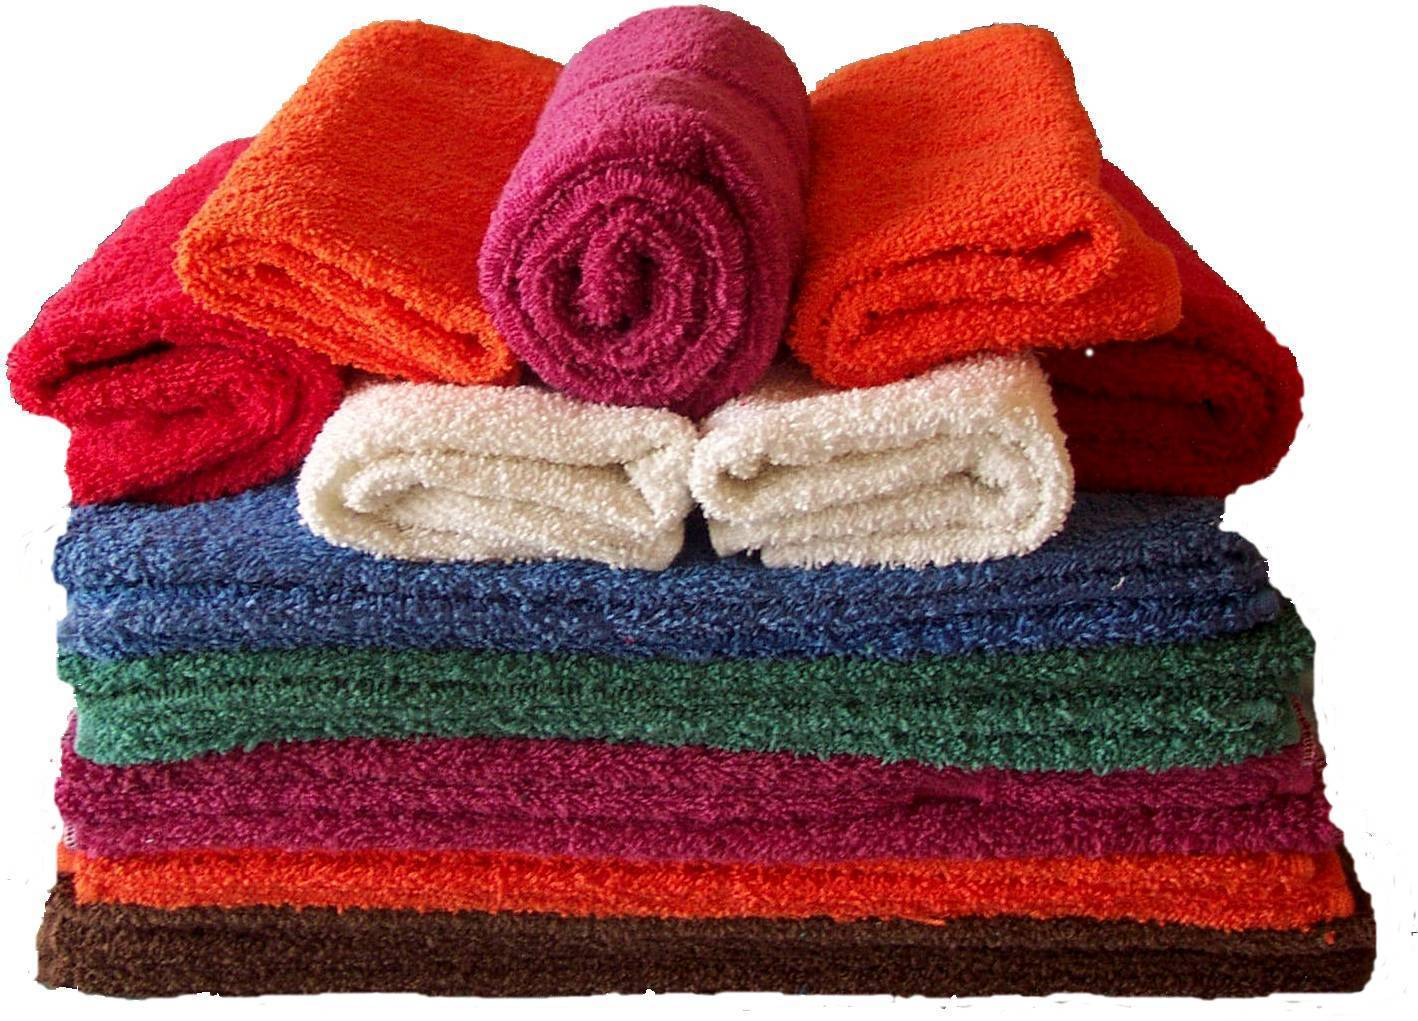 Cheap Price Bath Towel, 100% cotton 21s/2 Hotel Towel, Hotel Bath towel Supply